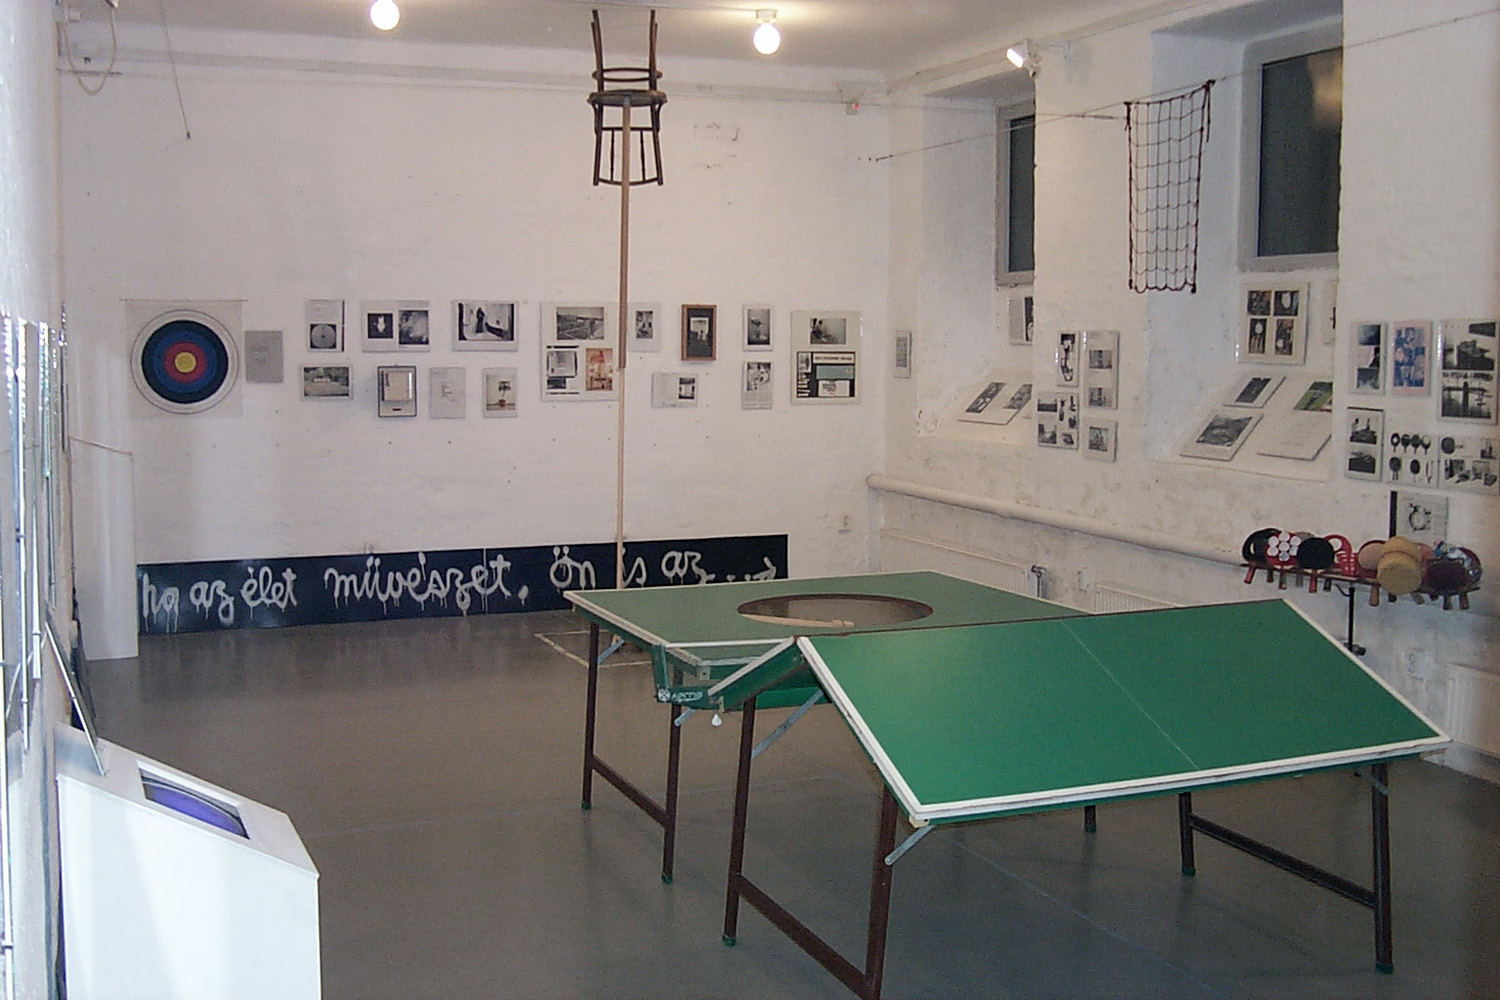 György Galantai: Fluxus Ping-Pong Table and Rackets, 2001. Budapest version of George Maciunas' ping pong table (1976) and ping-pong rackets (1965) at the Impossible Realism exhibition, Artpool P60, Budapest, 2001/Galántai György: Fluxus ping-pong asztal és ütők, 2001. George Maciunas ping-pong asztalának (1976) és ütőinek (1975) budapesti verziója a Lehetetlen Realizmus kiállításon, Artpool P60, Budapest, 2001